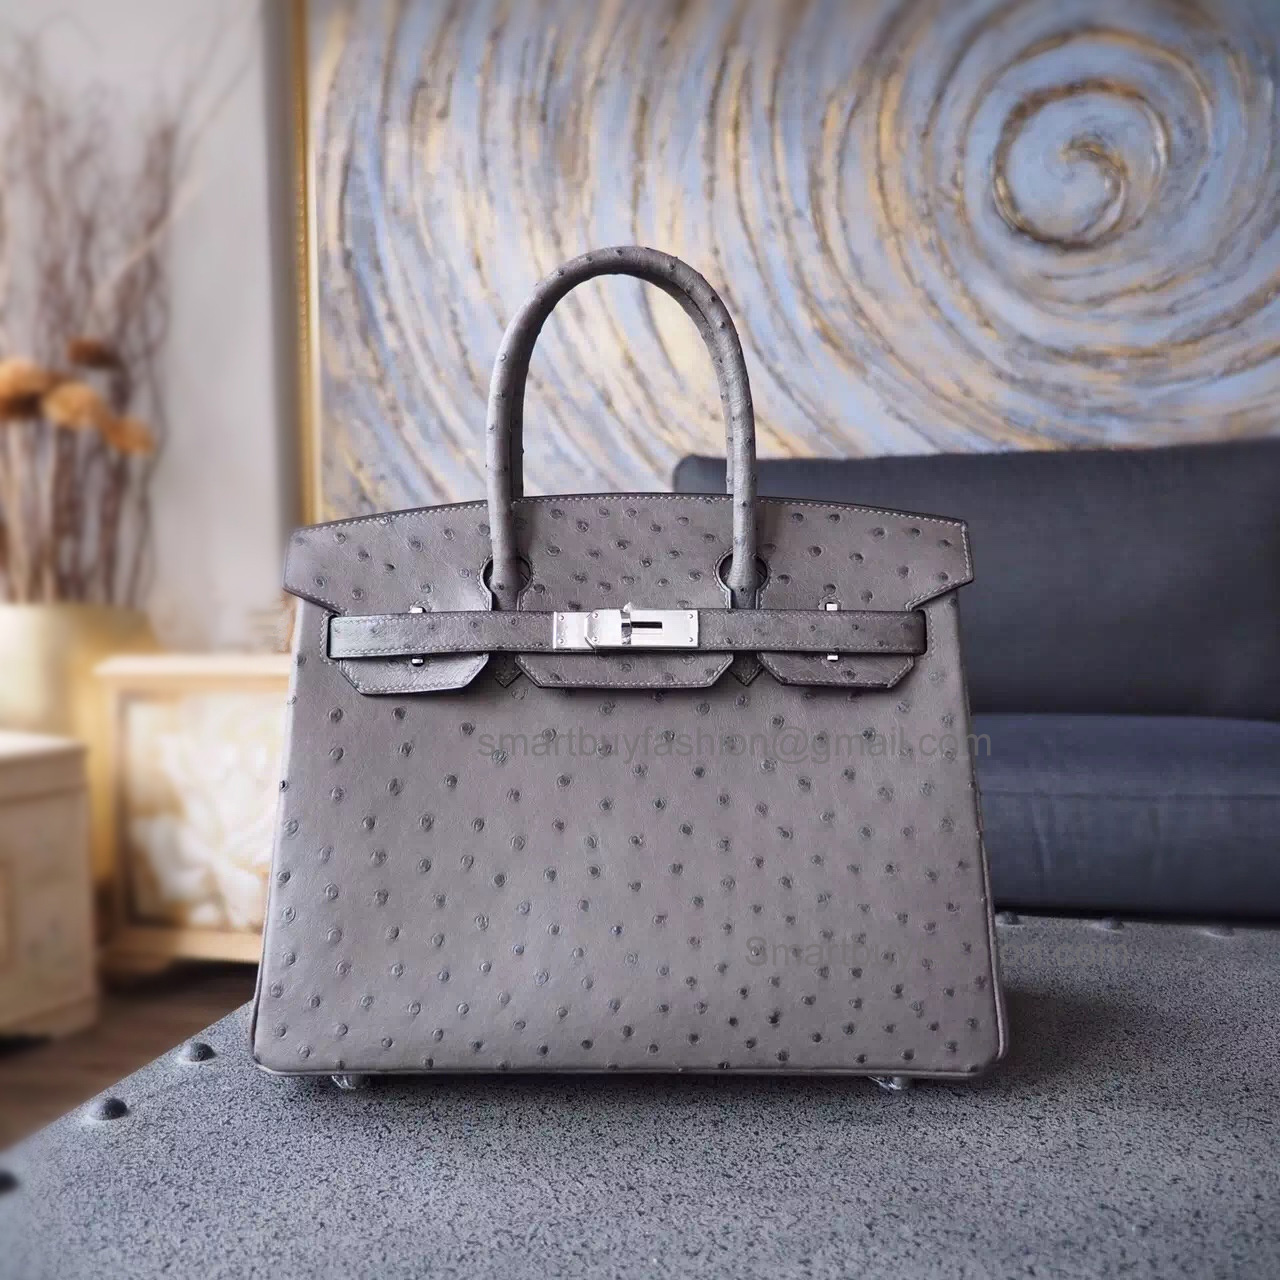 Hand Stitched Hermes Birkin 30 Bag in ck19 Mousse Ostrich SHW - 7a6eed2ed28e0